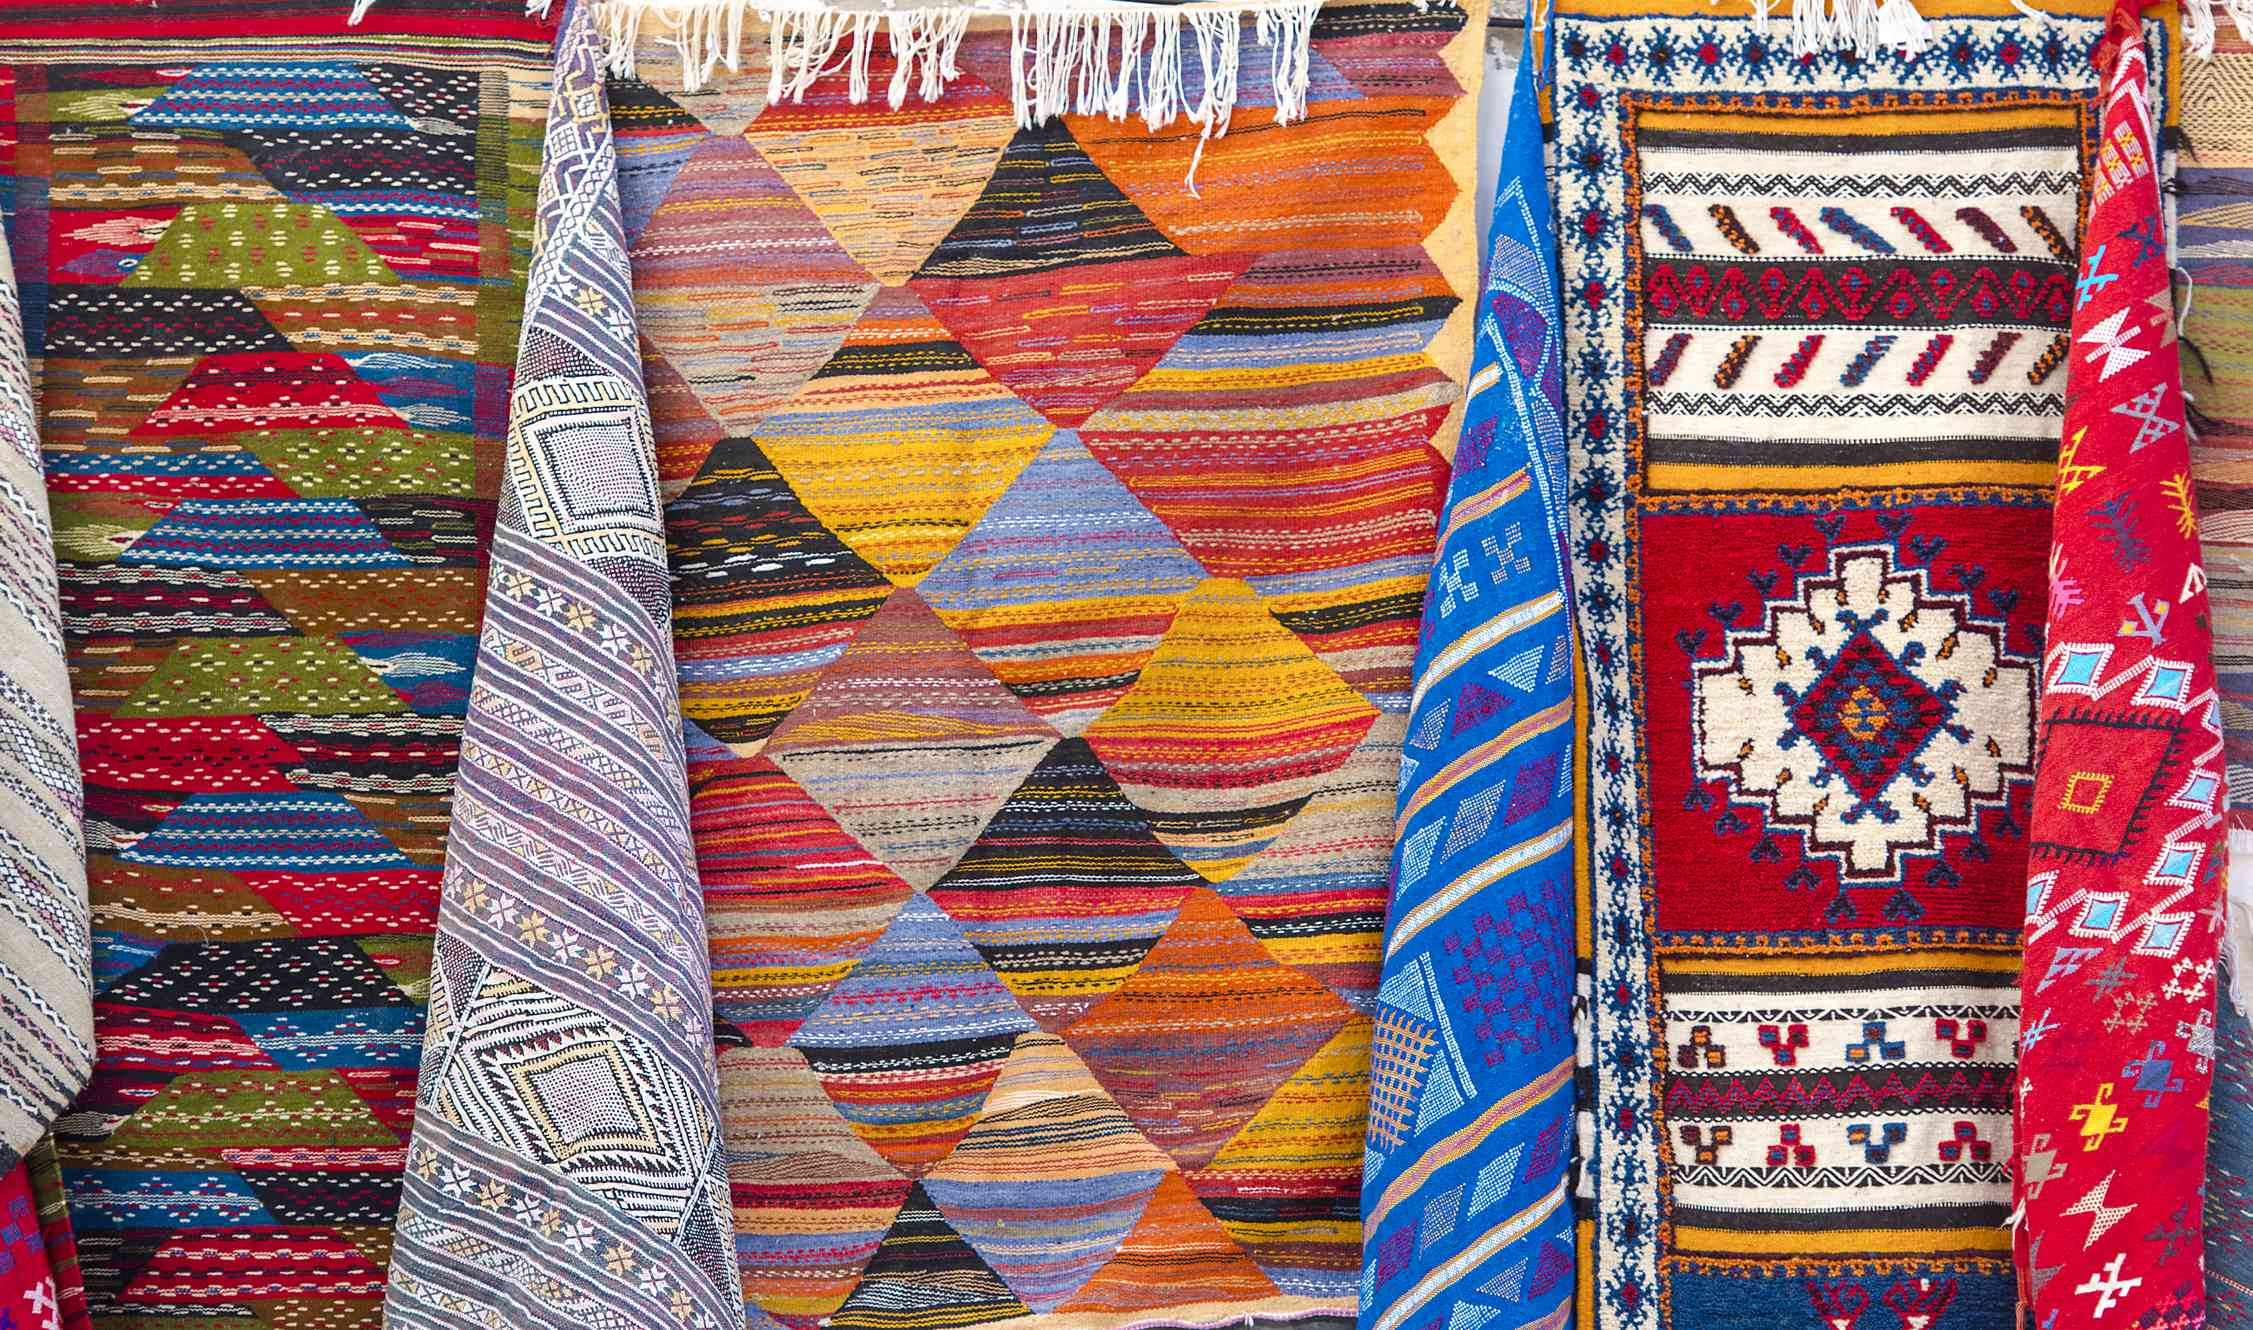 Traditional Moroccan Souvenirs and Carpets at a Market in Medina District